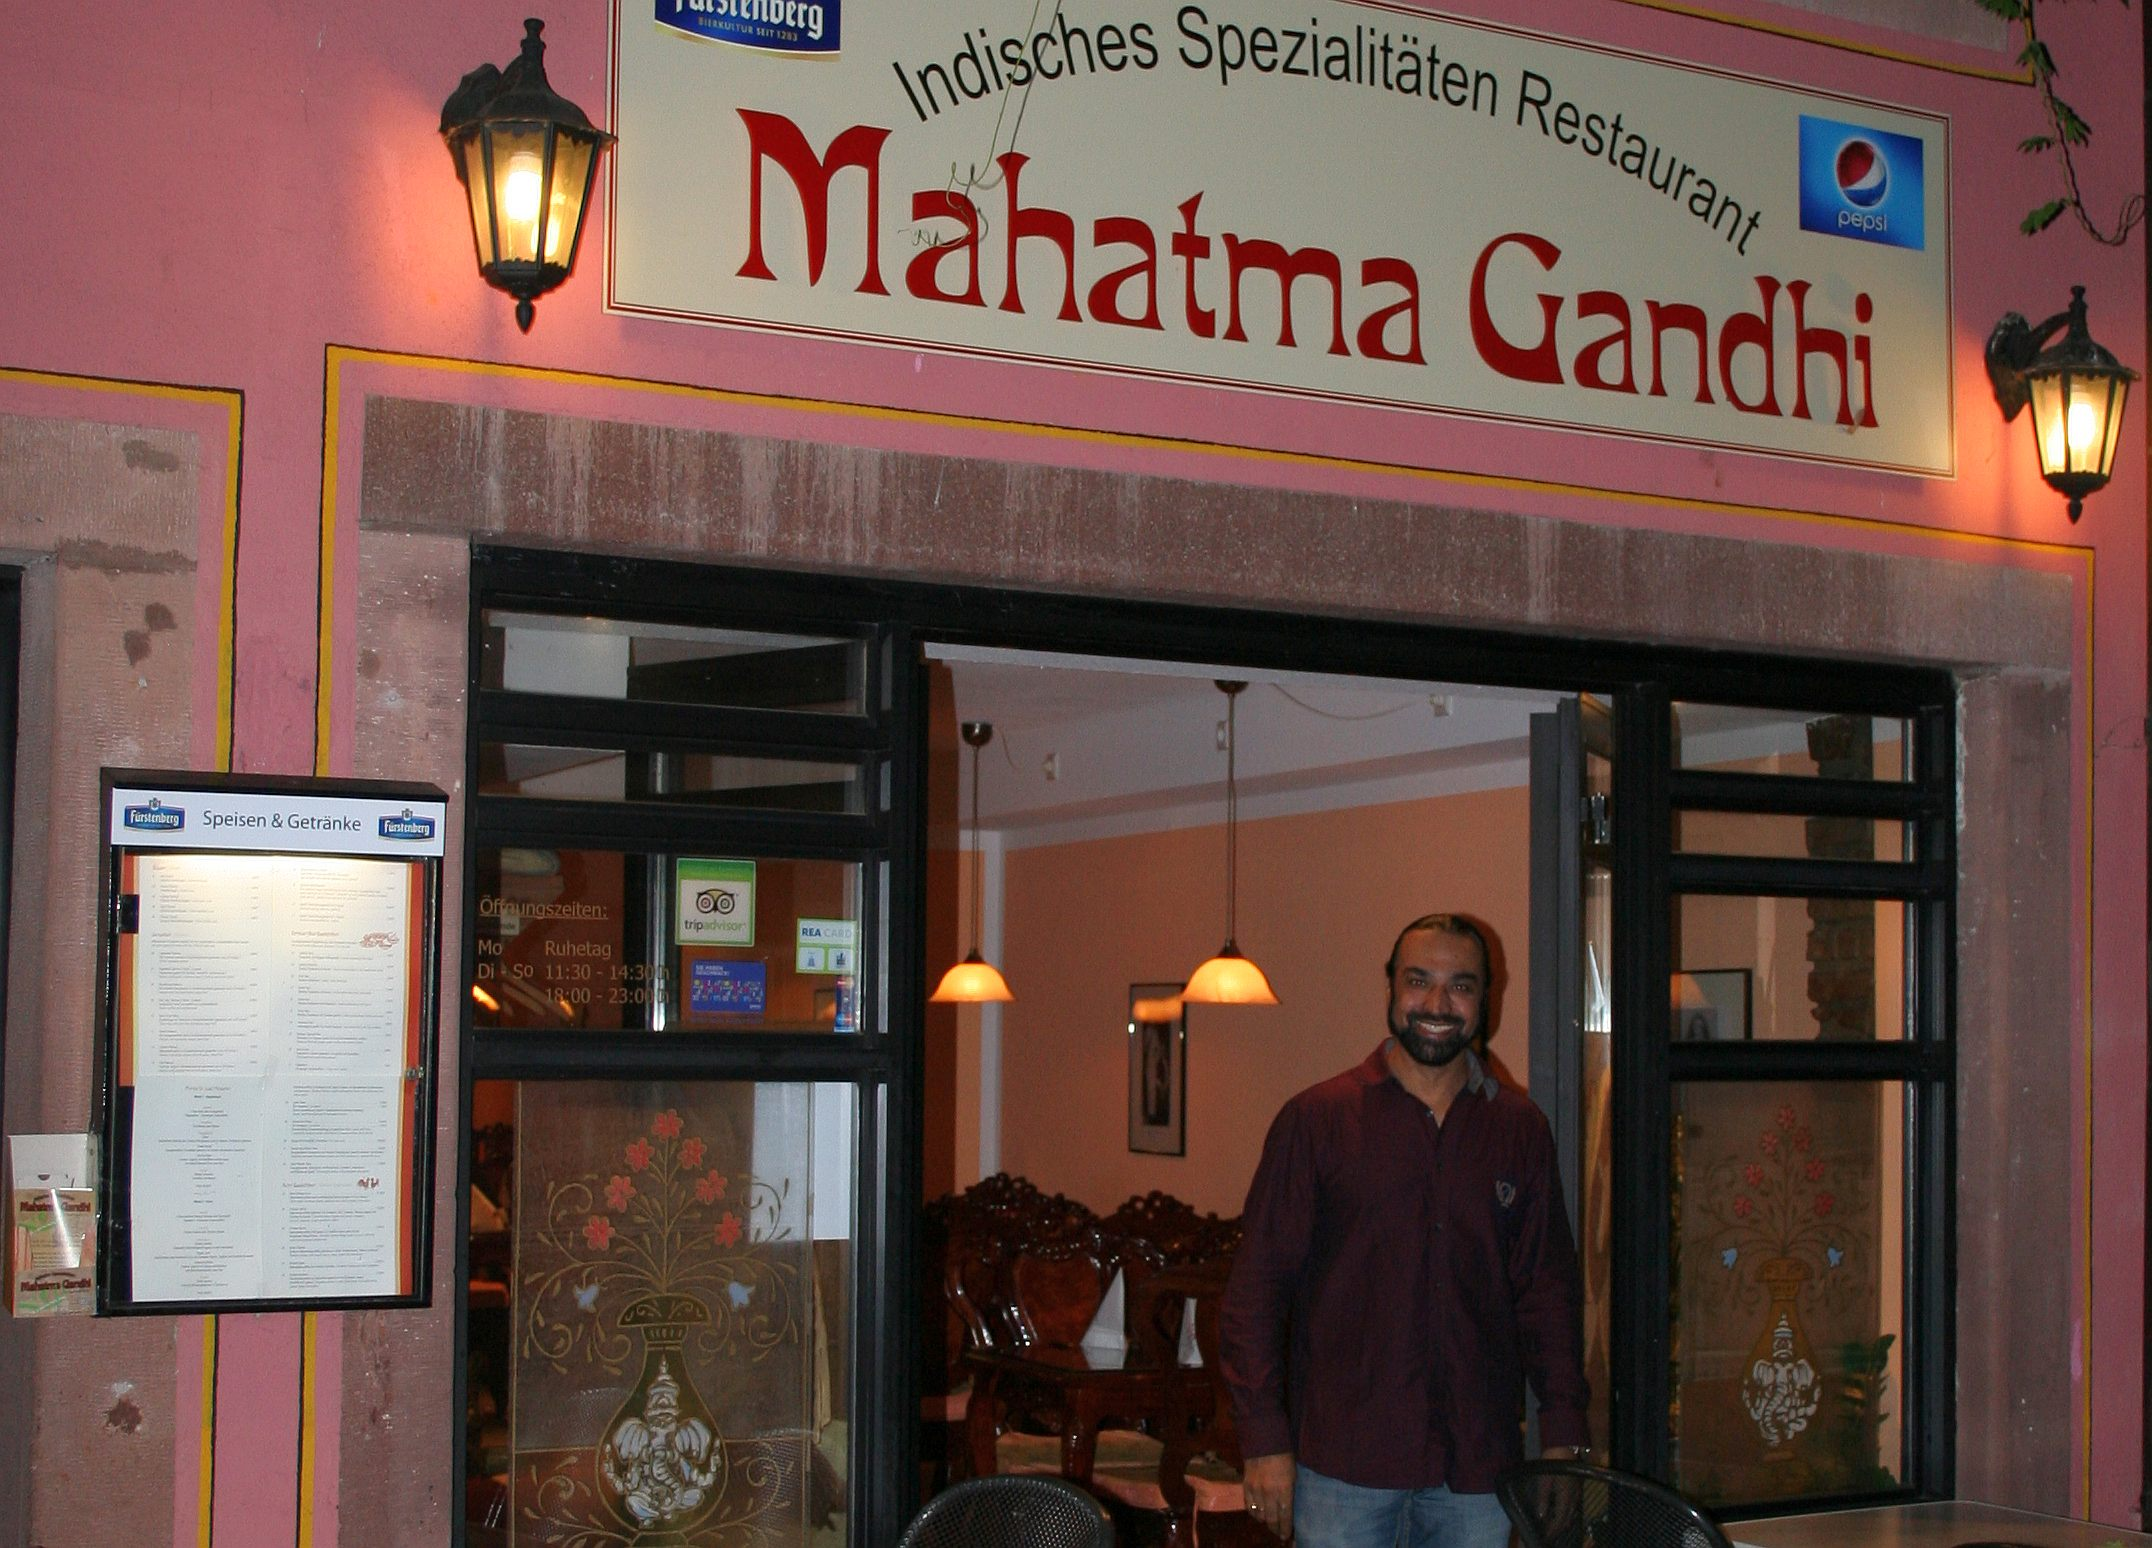 mahlzeit bei mahatma gandhi im breisgau das indische restaurant von tscharanjid matta singh in. Black Bedroom Furniture Sets. Home Design Ideas